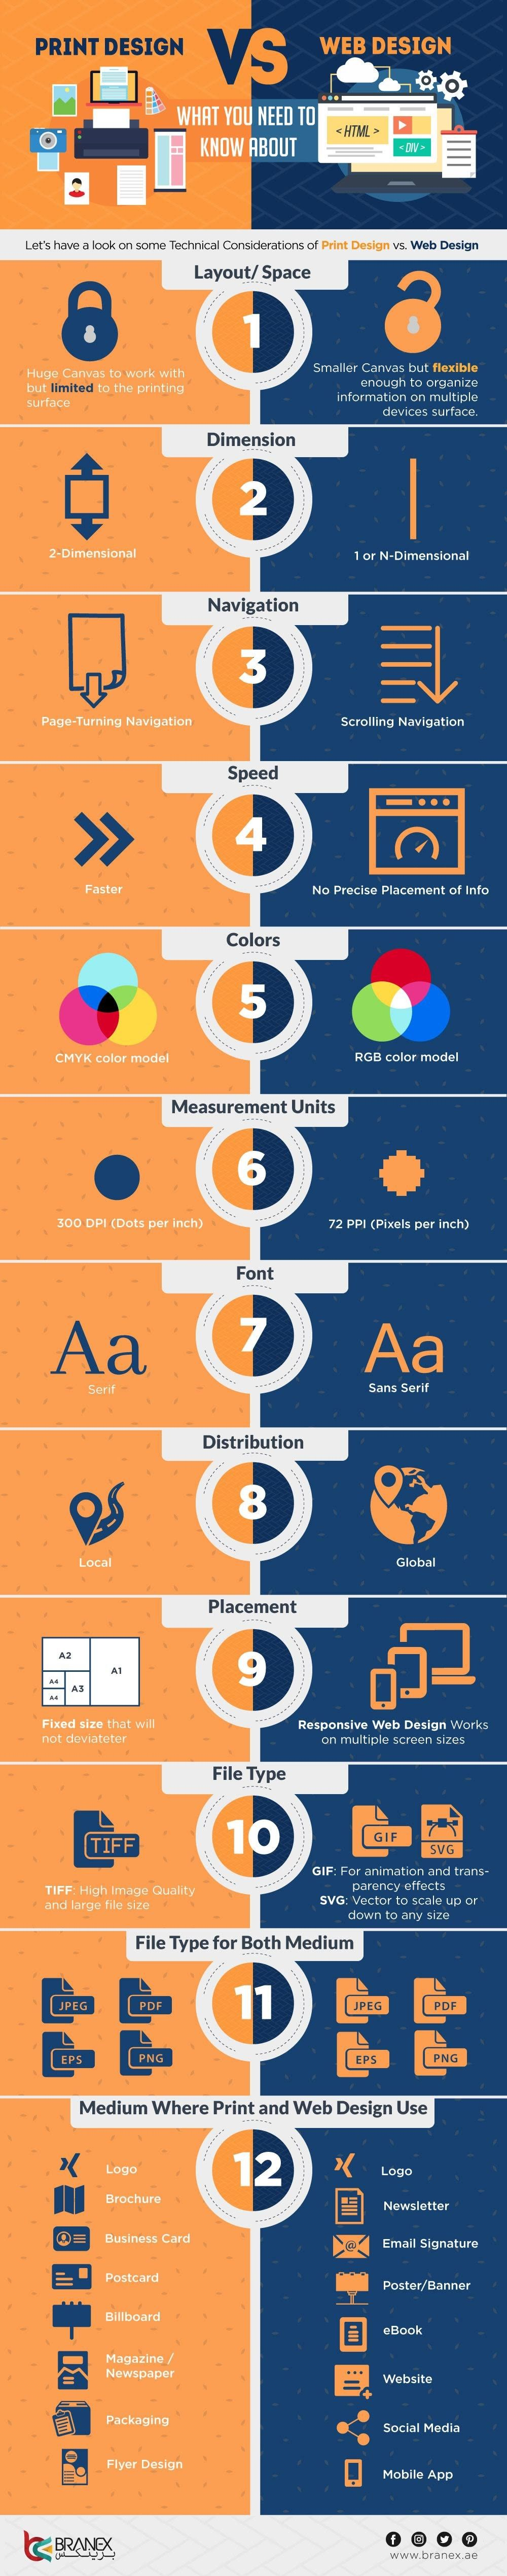 Web Design Vs Print Design What You Need To Know About Infographic Web Design Print Design Print